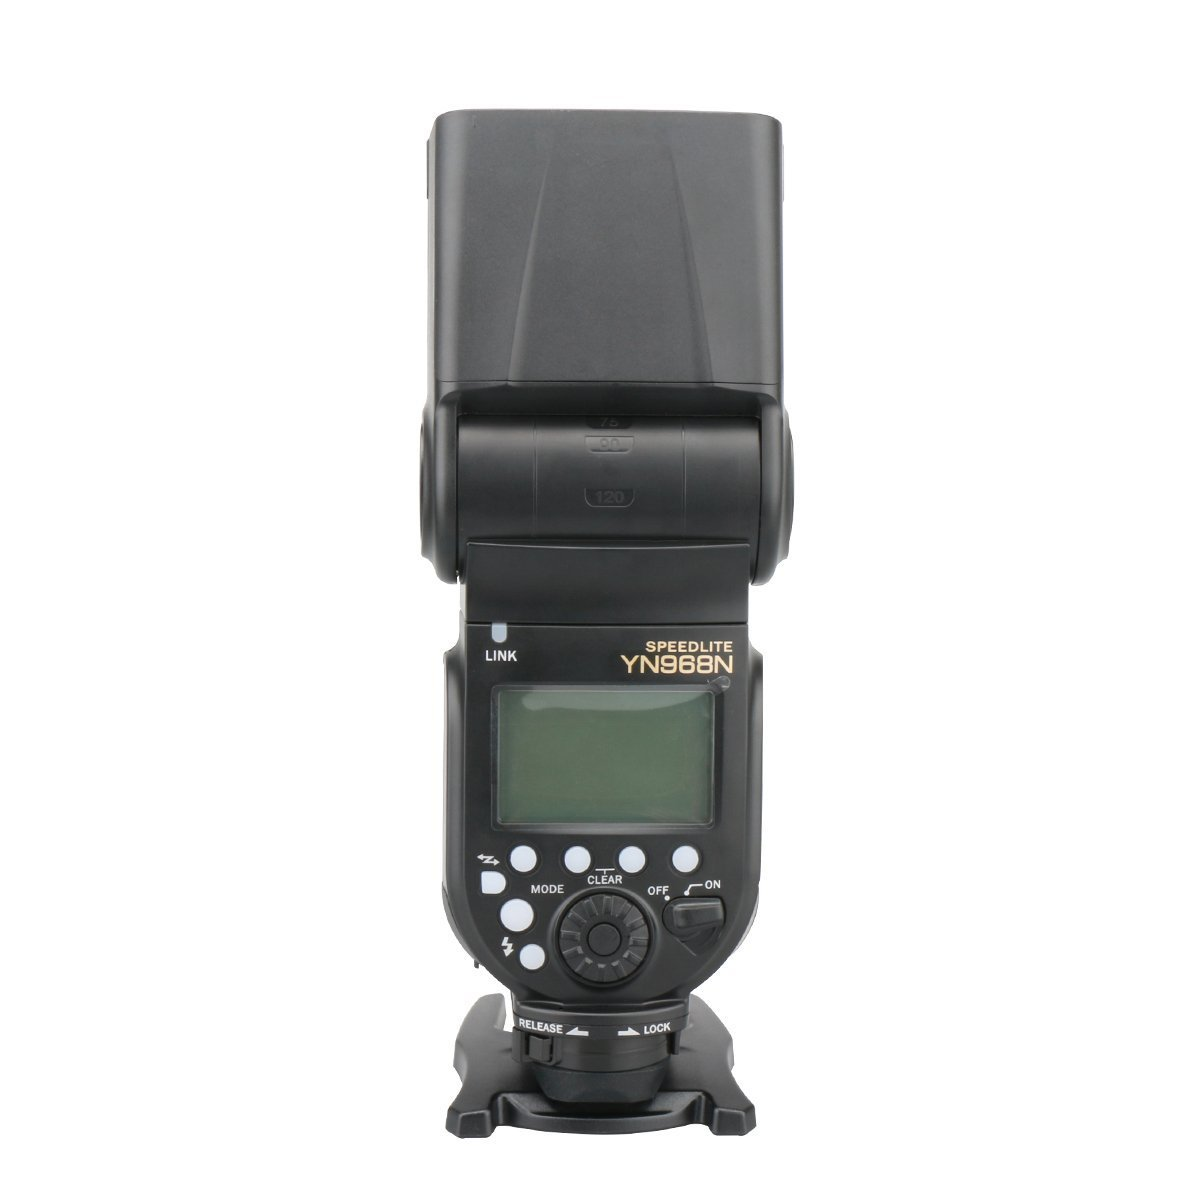 YONGNUO YN968N Wireless Flash Speedlite High-speed Sync TTL 1/8000 with LED Light for Nikon Compatible with YN622N and YN560 Wireless System with Diffuser